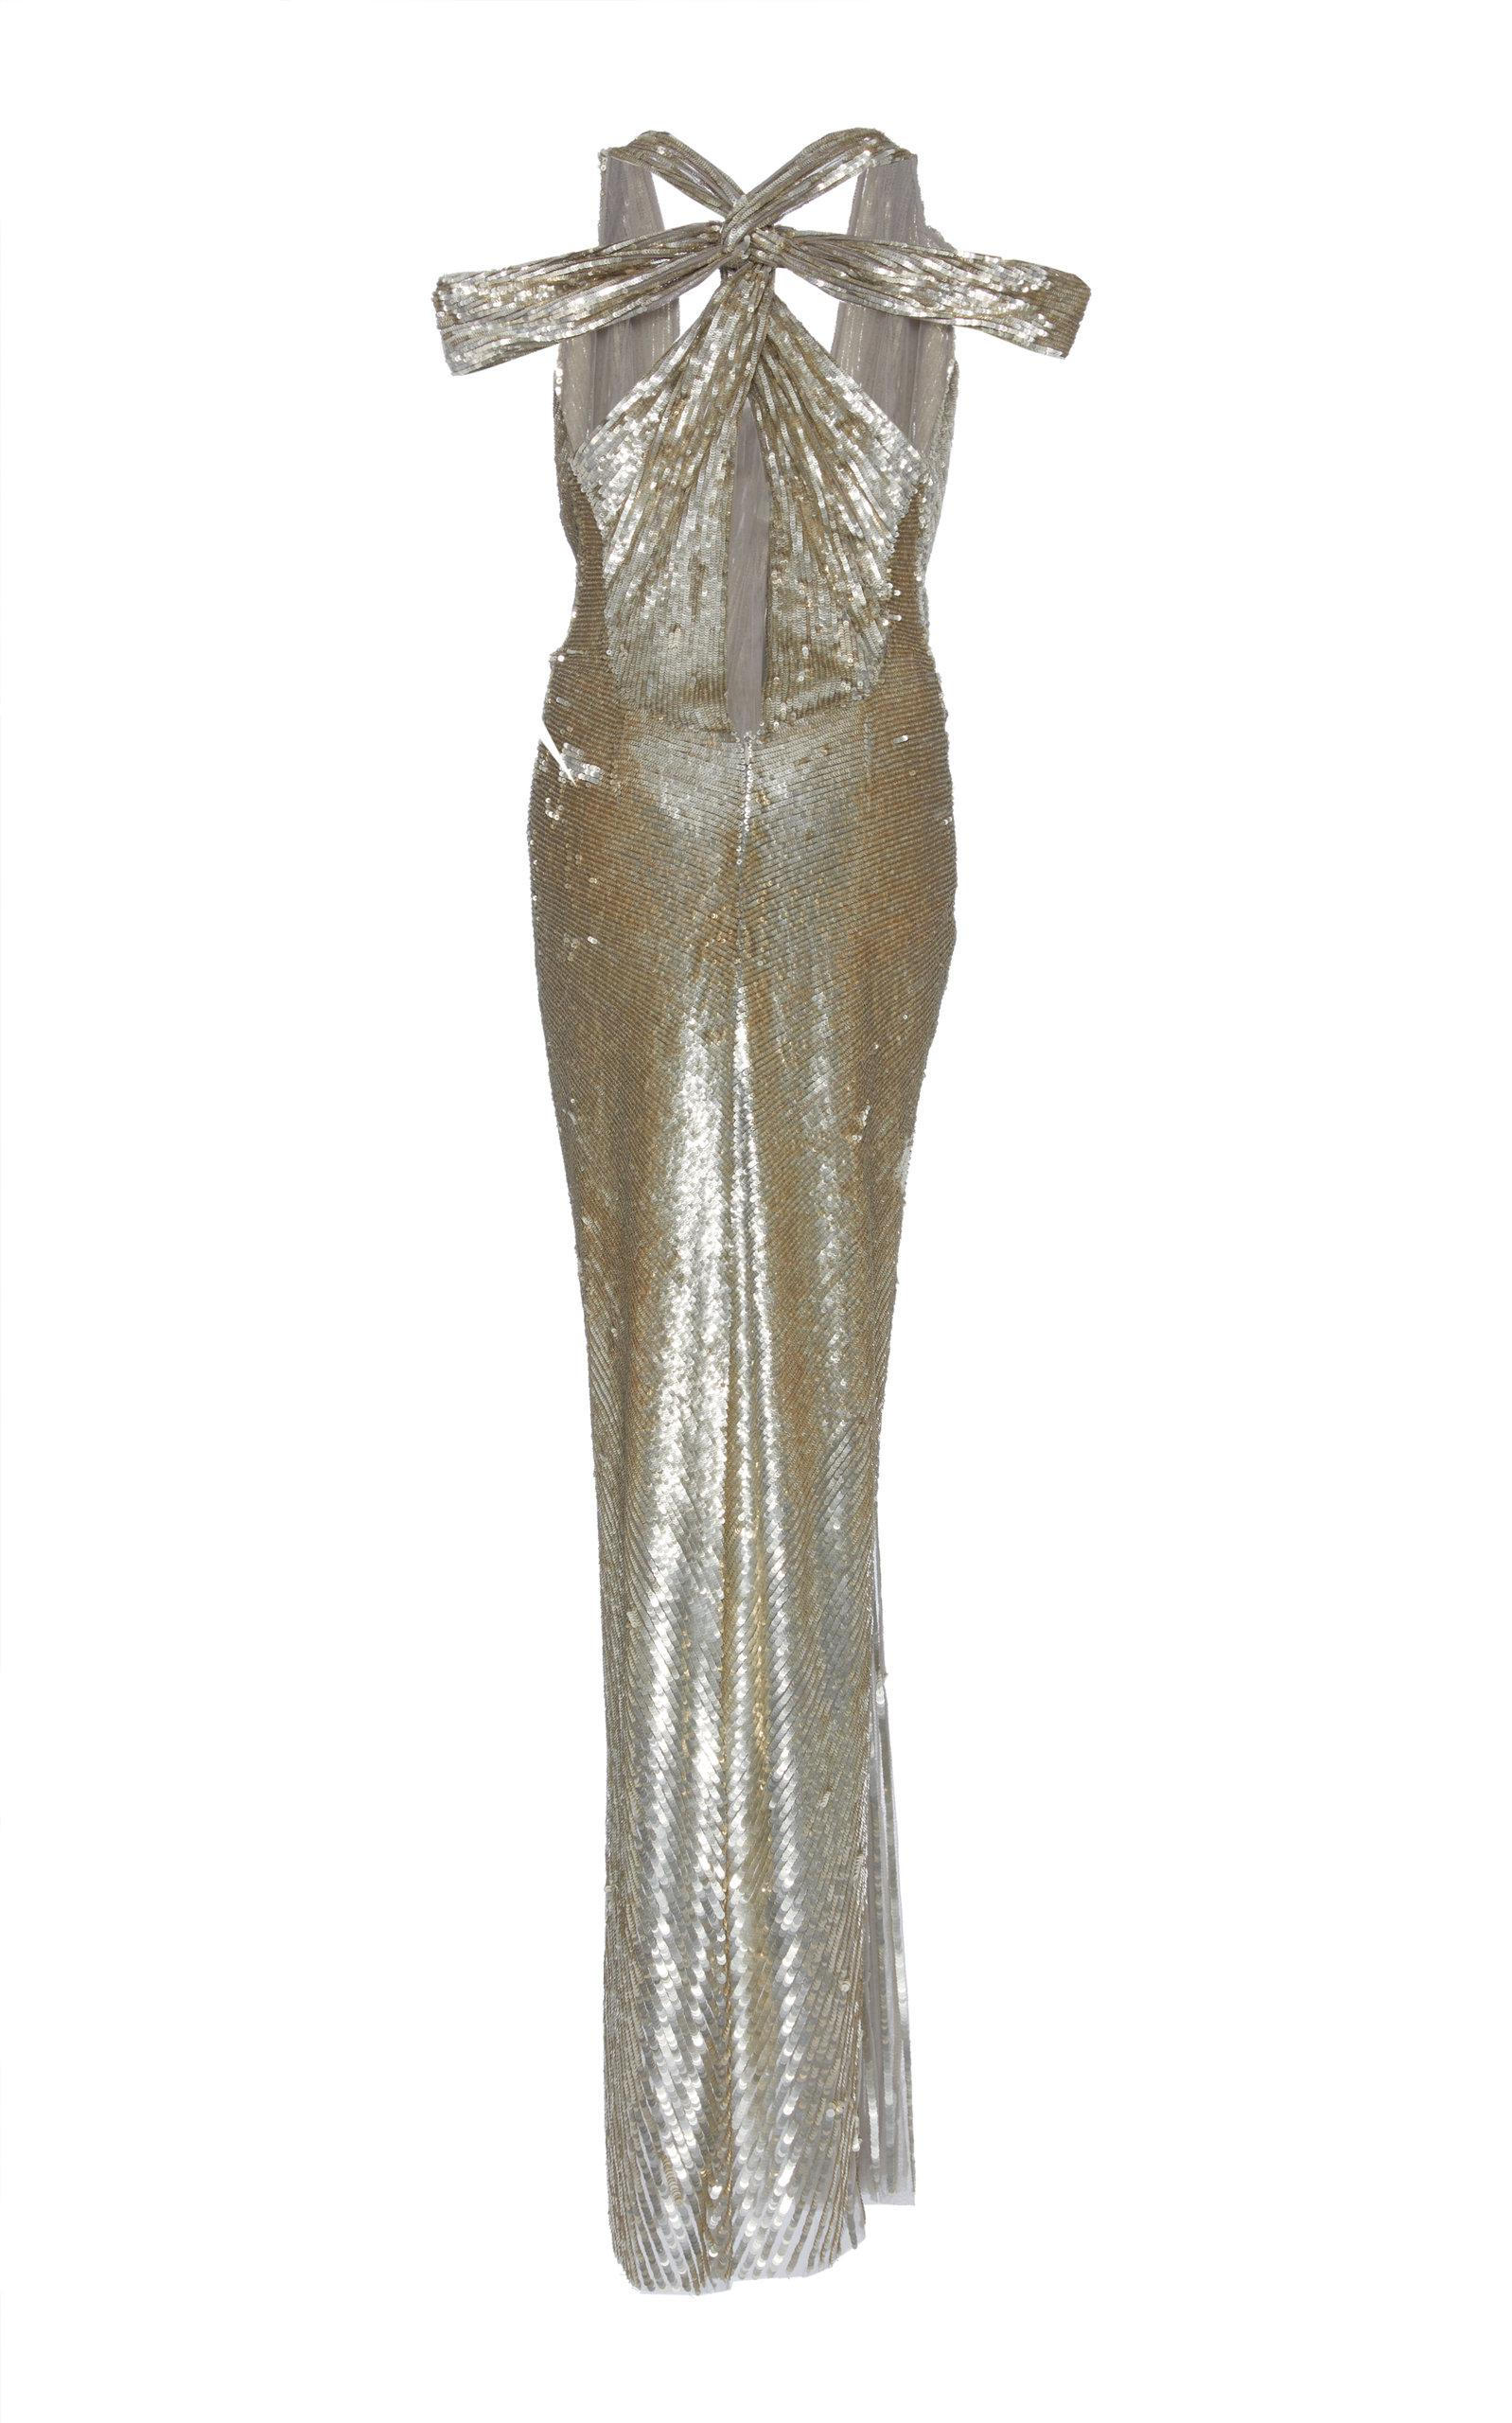 Lyst - Jenny Packham Alula Sequin Gown in Metallic